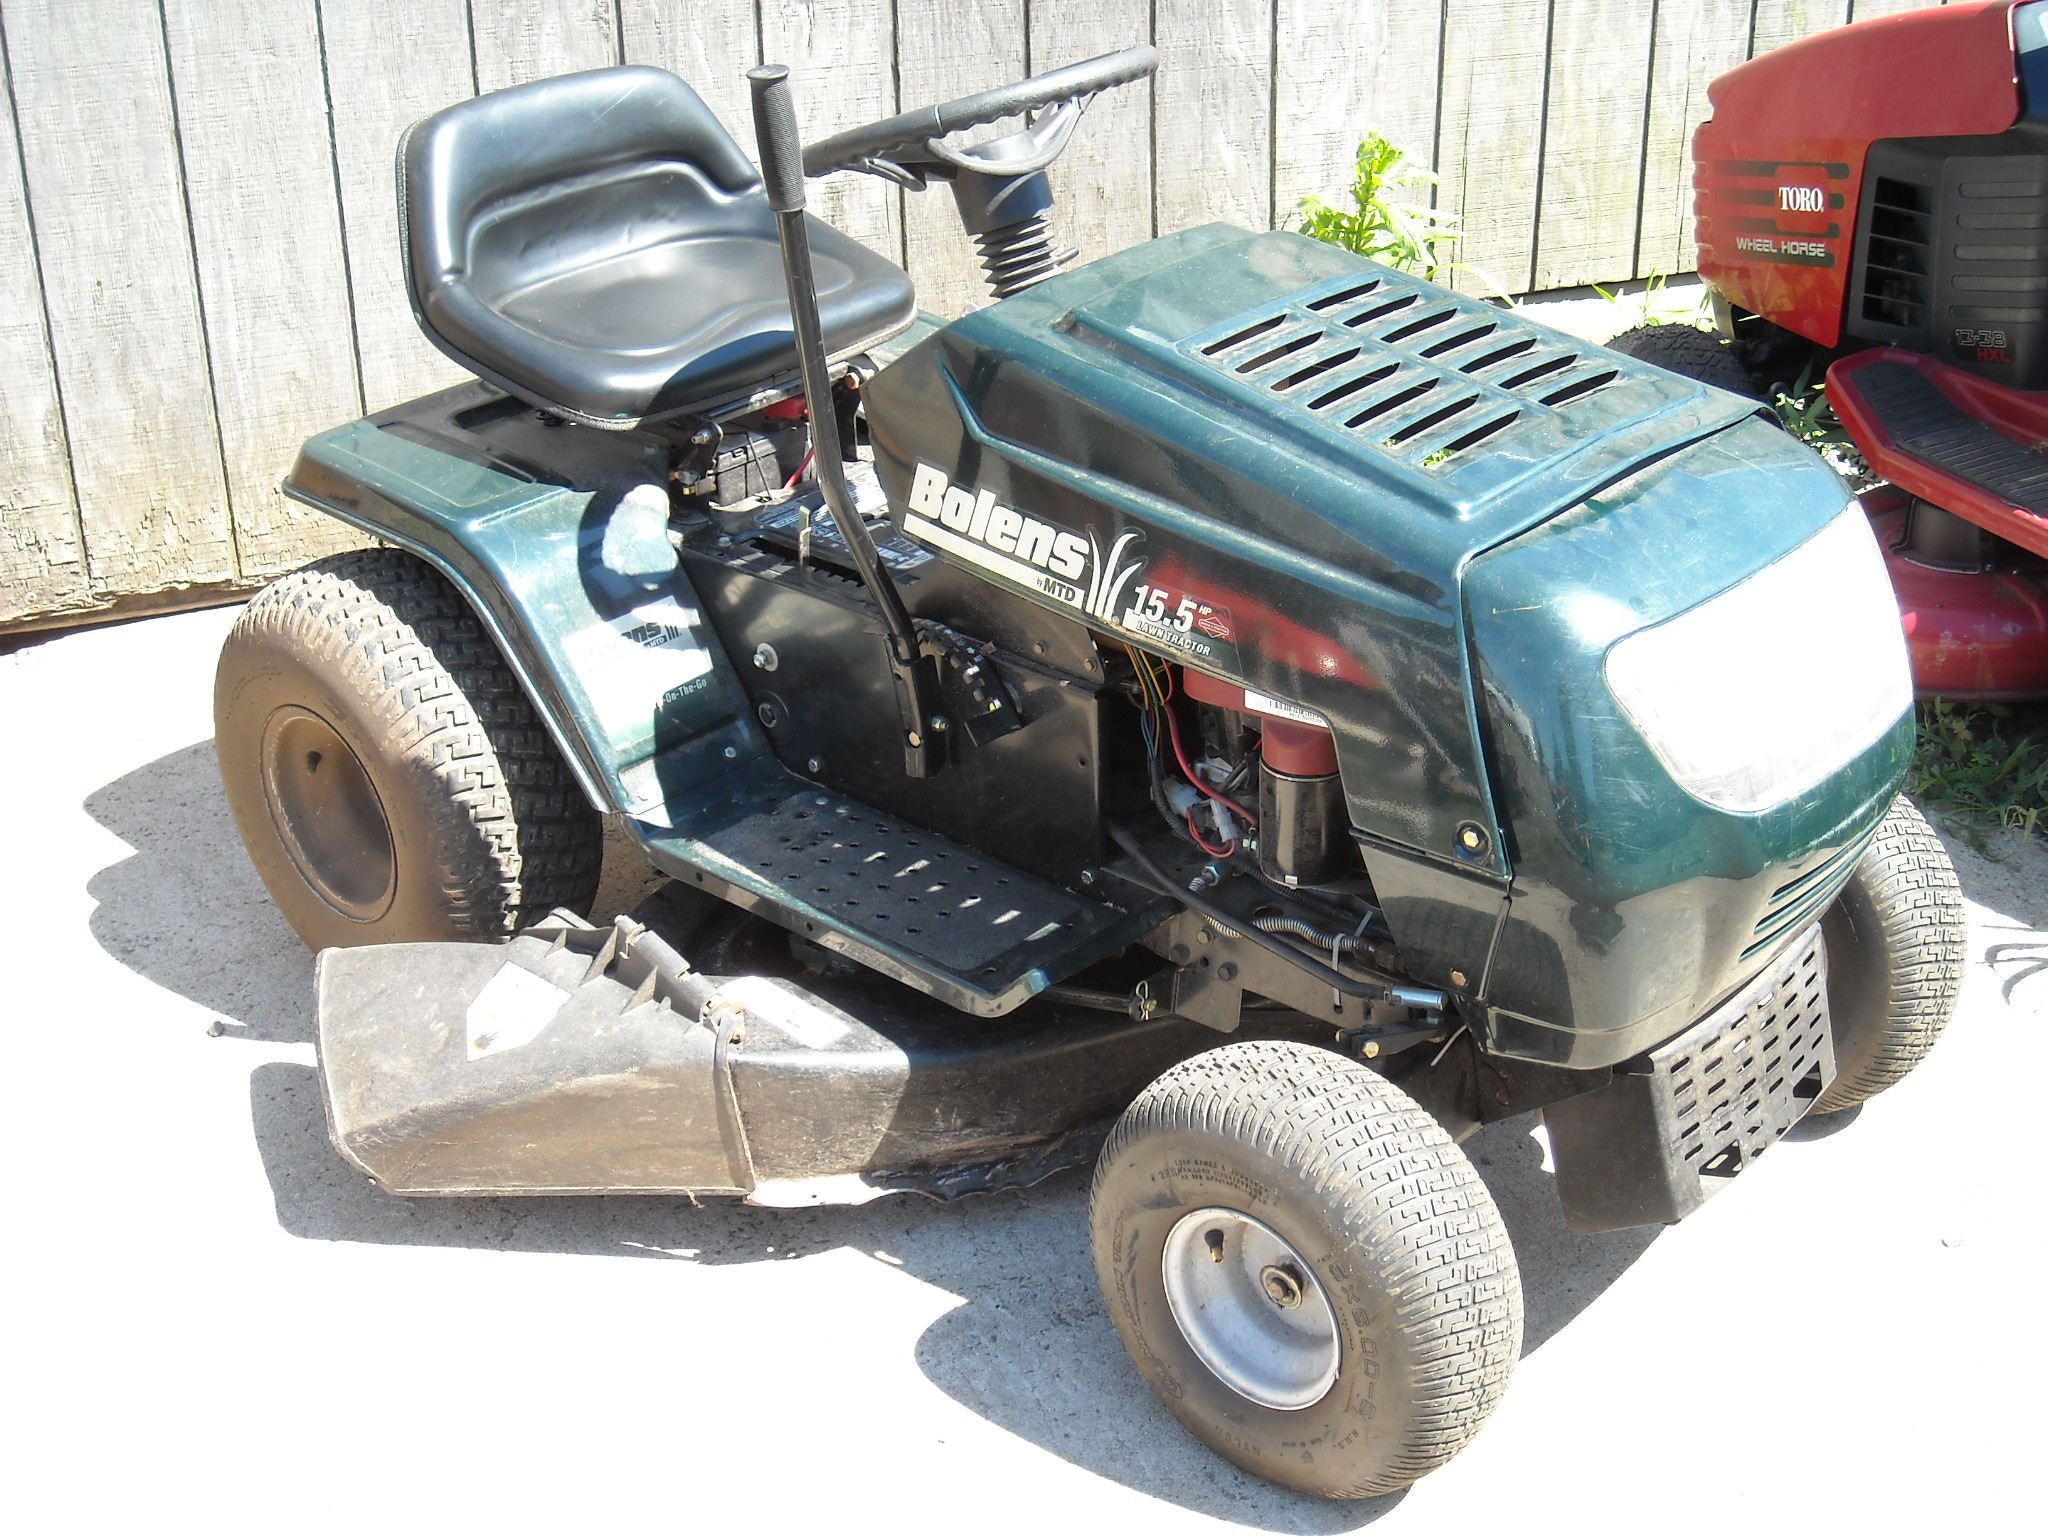 Baggers for Lawn Mowers: April 2011